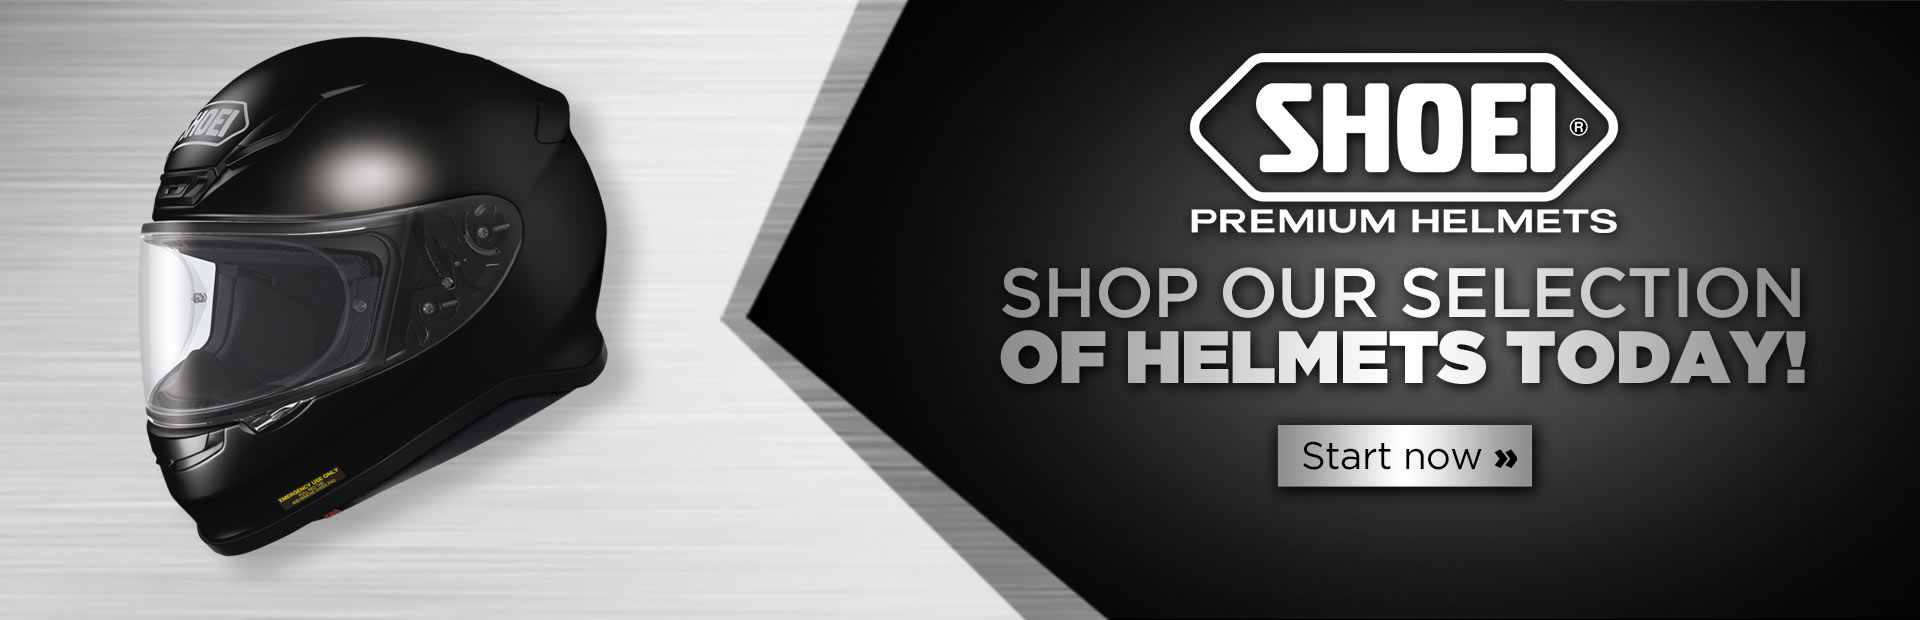 Shop our selection of Shoei helmets today! Click here to start.